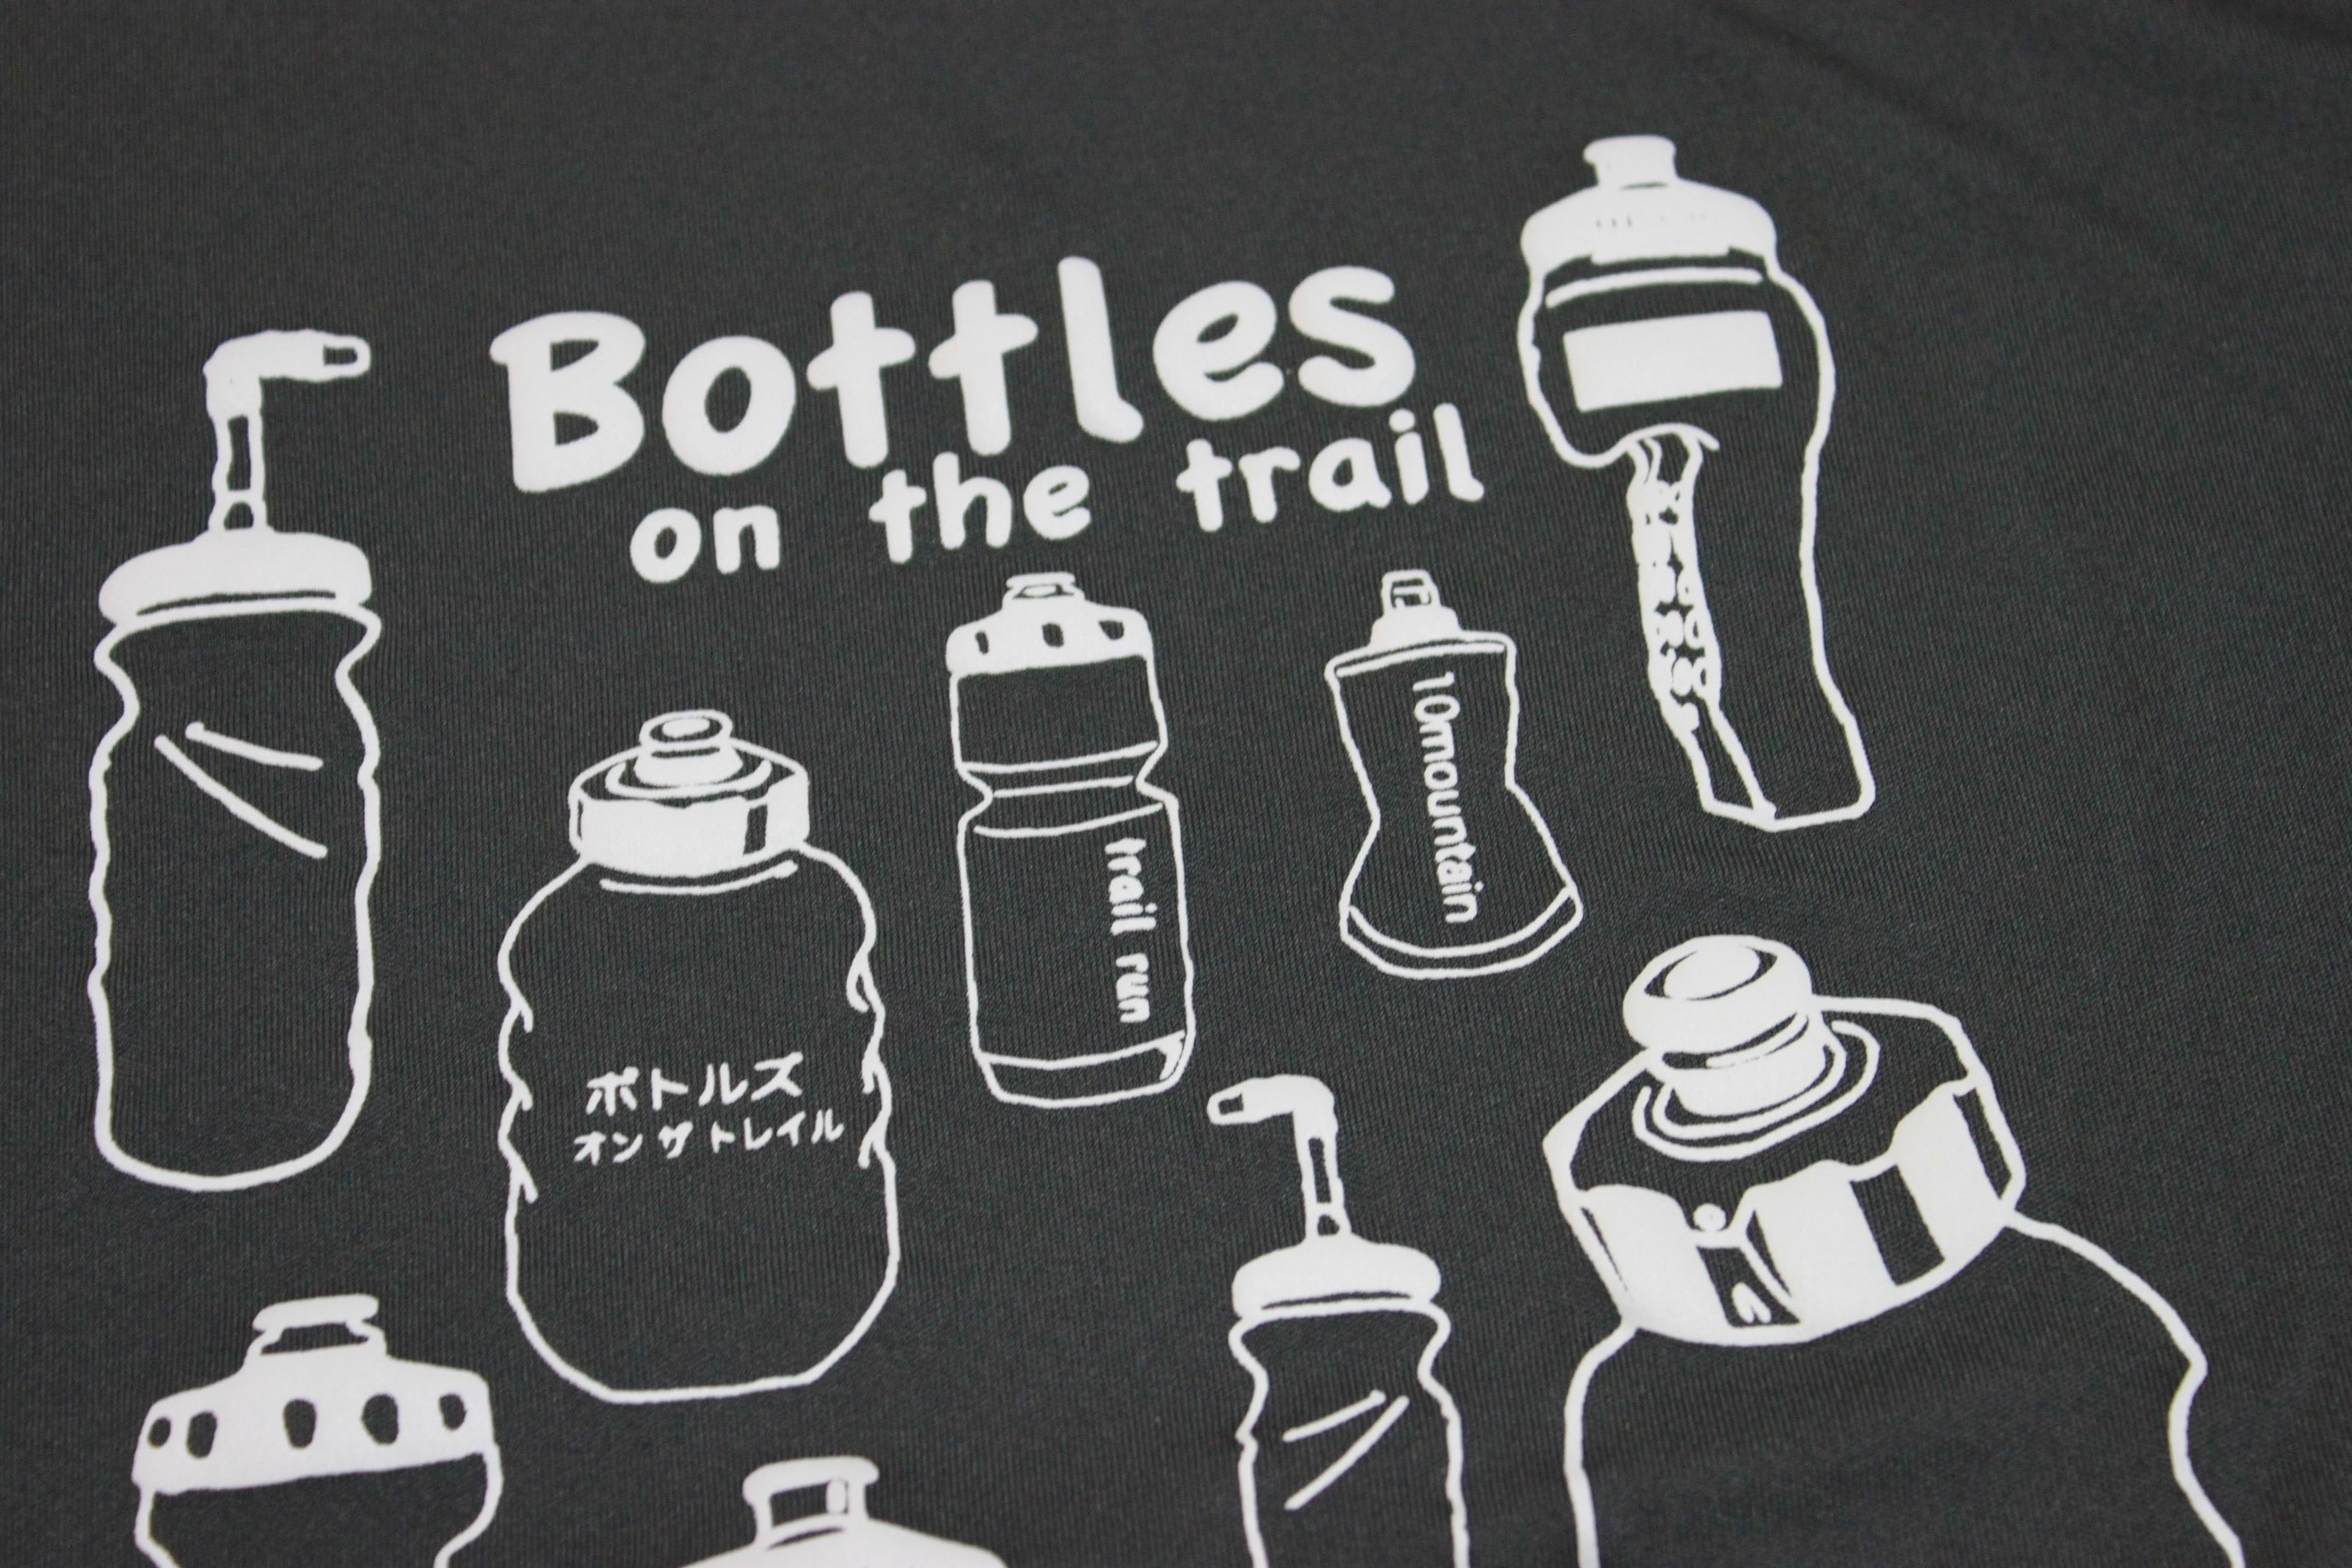 Bottles on the trail / ノースリーブ Navy & Gray